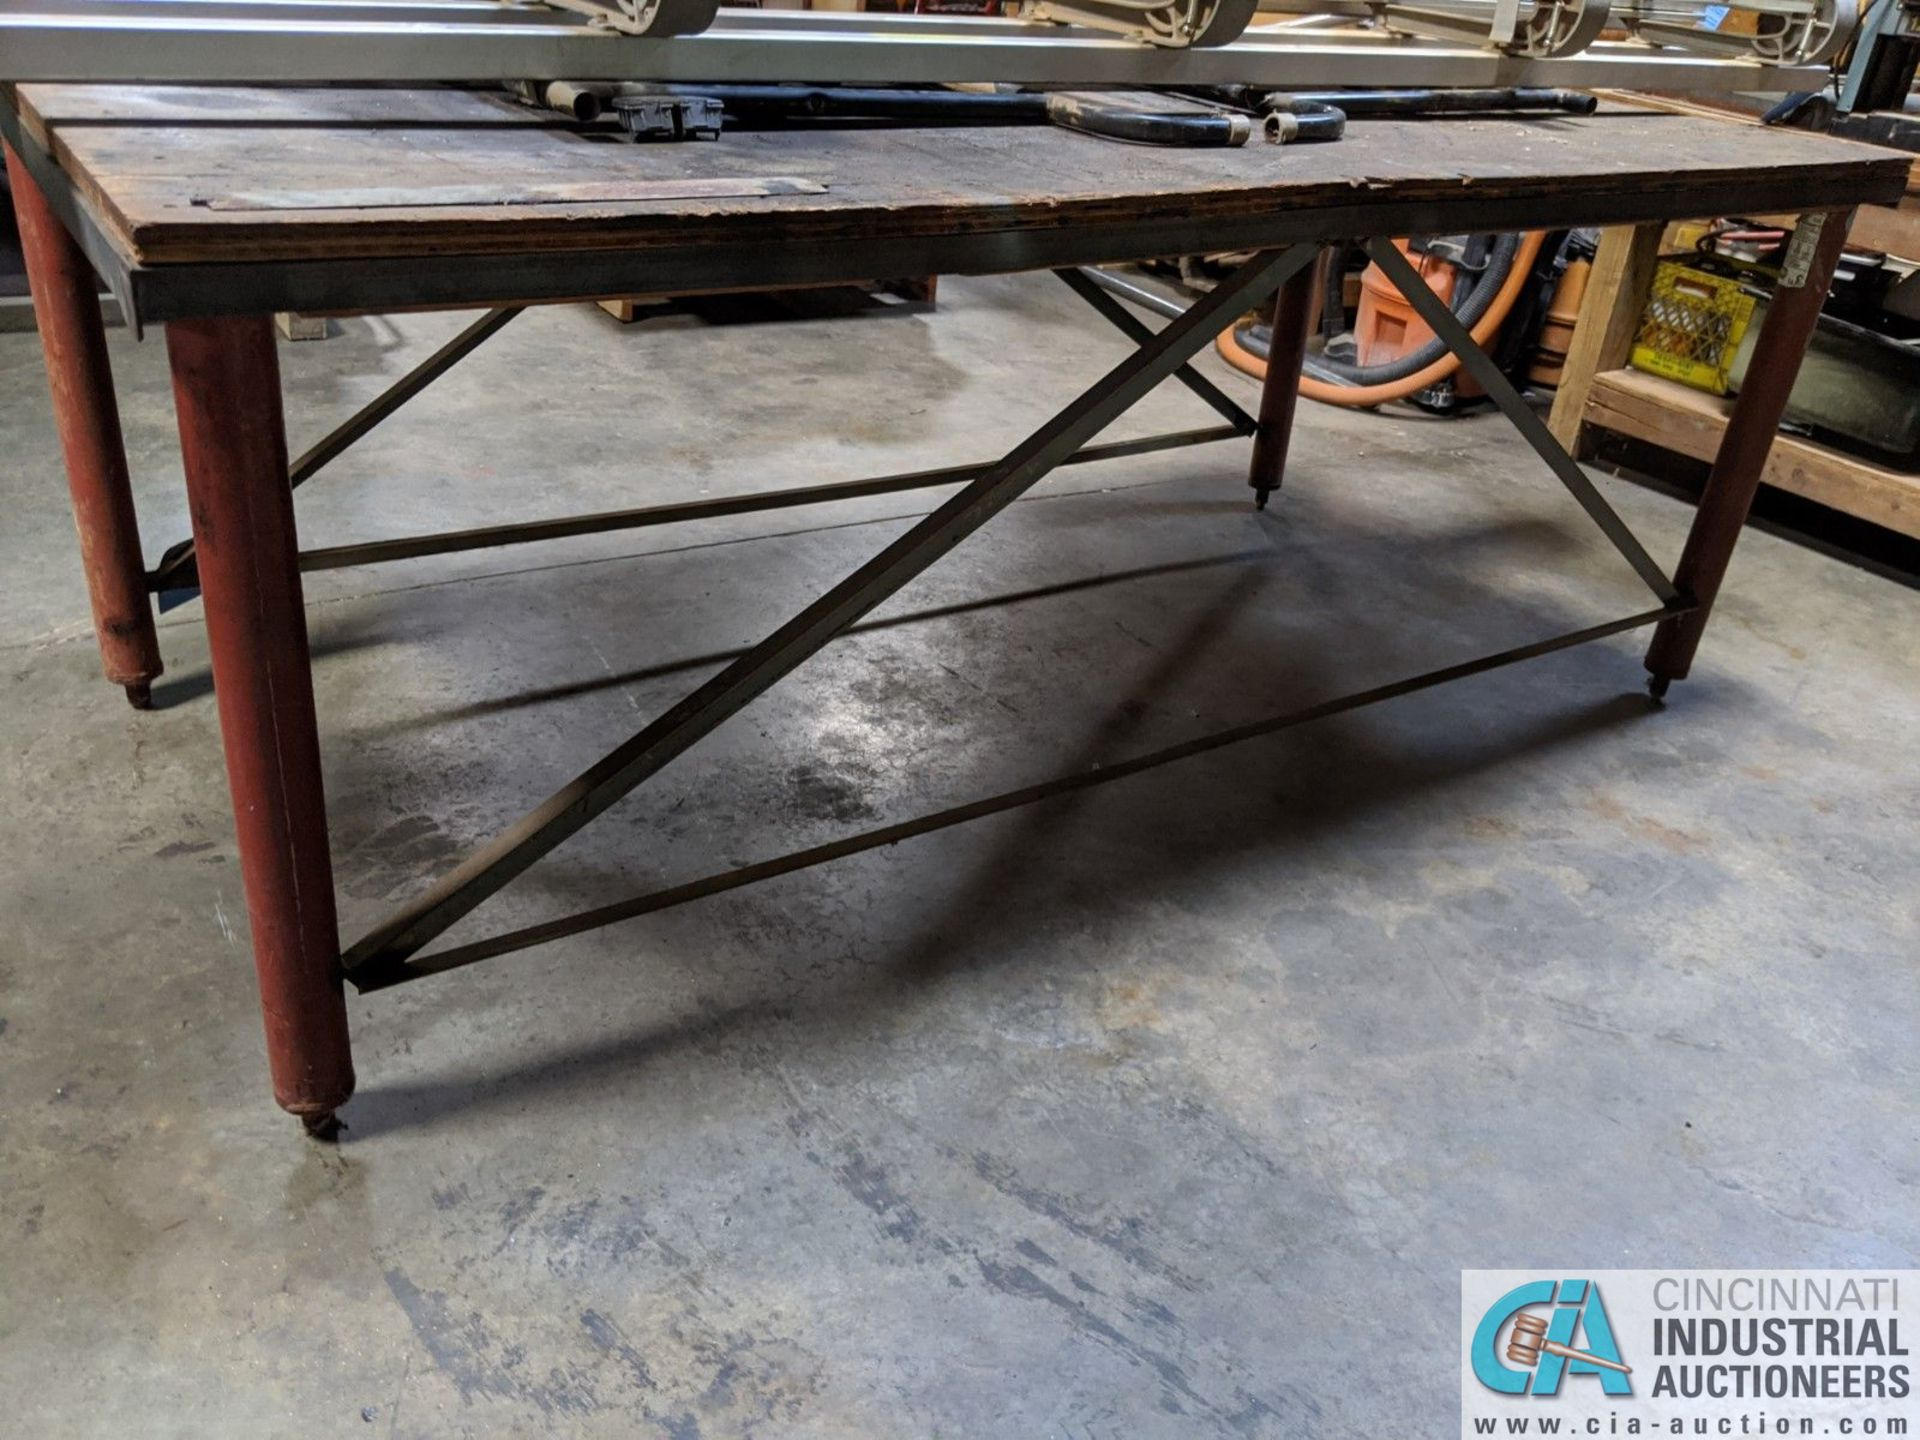 "48"" X 96"" STEEL FRAME TABLE (8635 East Ave., Mentor, OH 44060 - John Magnasum: 440-667-9414) - Image 2 of 2"